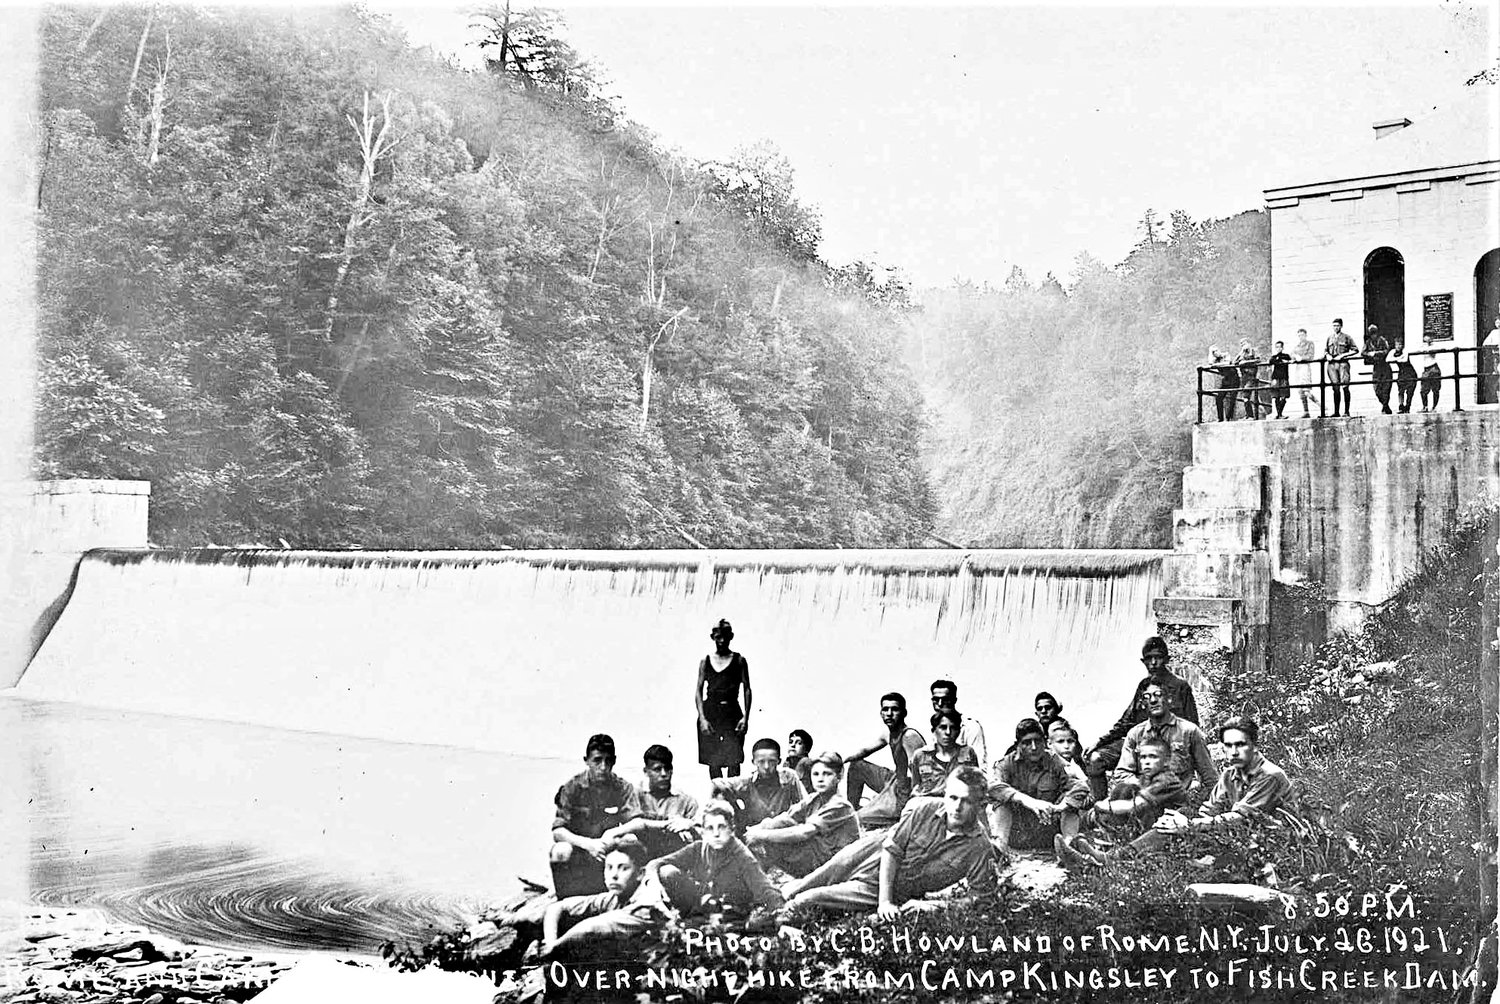 "YOUNG HIKERS — This July 26, 1921, photo by C.B. Howland shows young people who participated in an ""overnight hike from Camp Kingsley to Fish Creek Dam,""according to the caption on the photo. Today, the dam is strictly off-limits to the public. Kessinger Dam was built on the Fish Creek in Annsville in1910, and water was diverted into a hand-dug six-foot wide and one-mile long rock tunnel. A 48-inch pipe carries water seven miles, from the tunnel, to the reservoirs in the town of Lee."